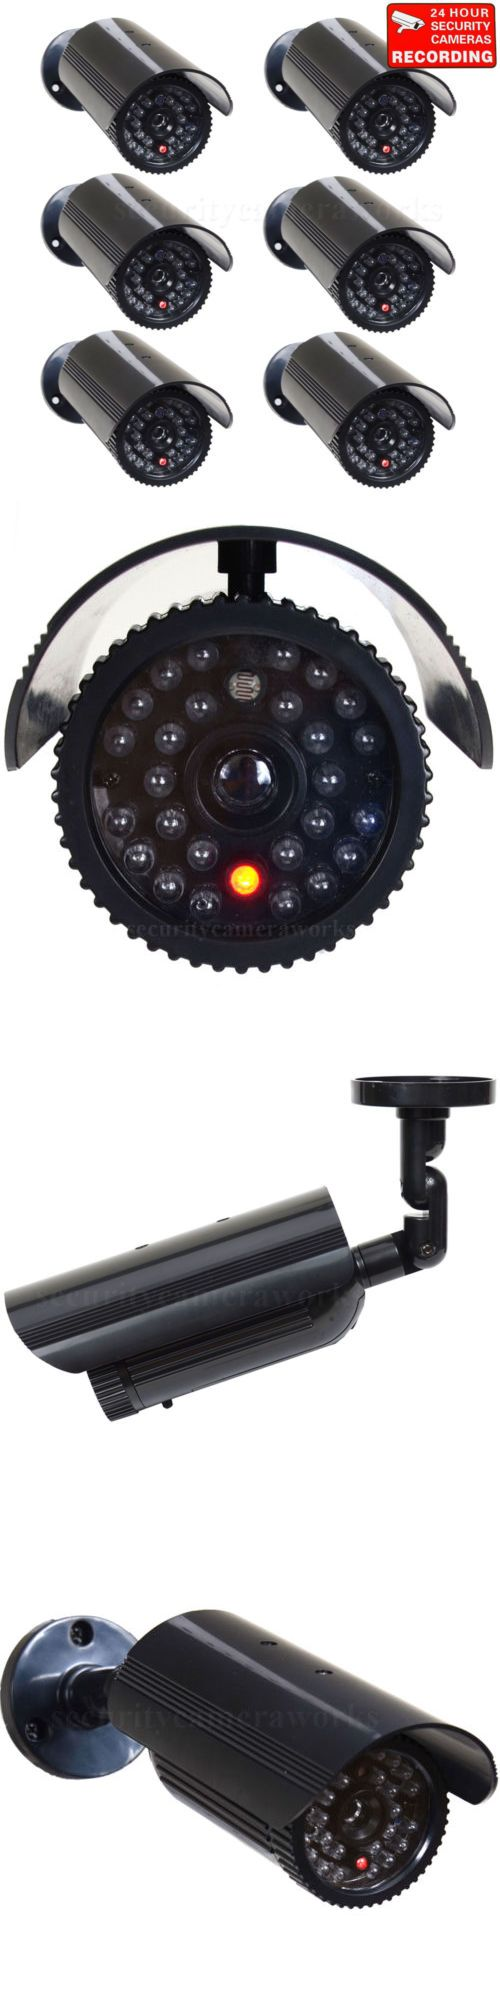 Dummy Cameras: 6X Dummy Security Camera Fake Infrared Leds Flashing Light Home Surveillance Bfj -> BUY IT NOW ONLY: $55.9 on eBay!